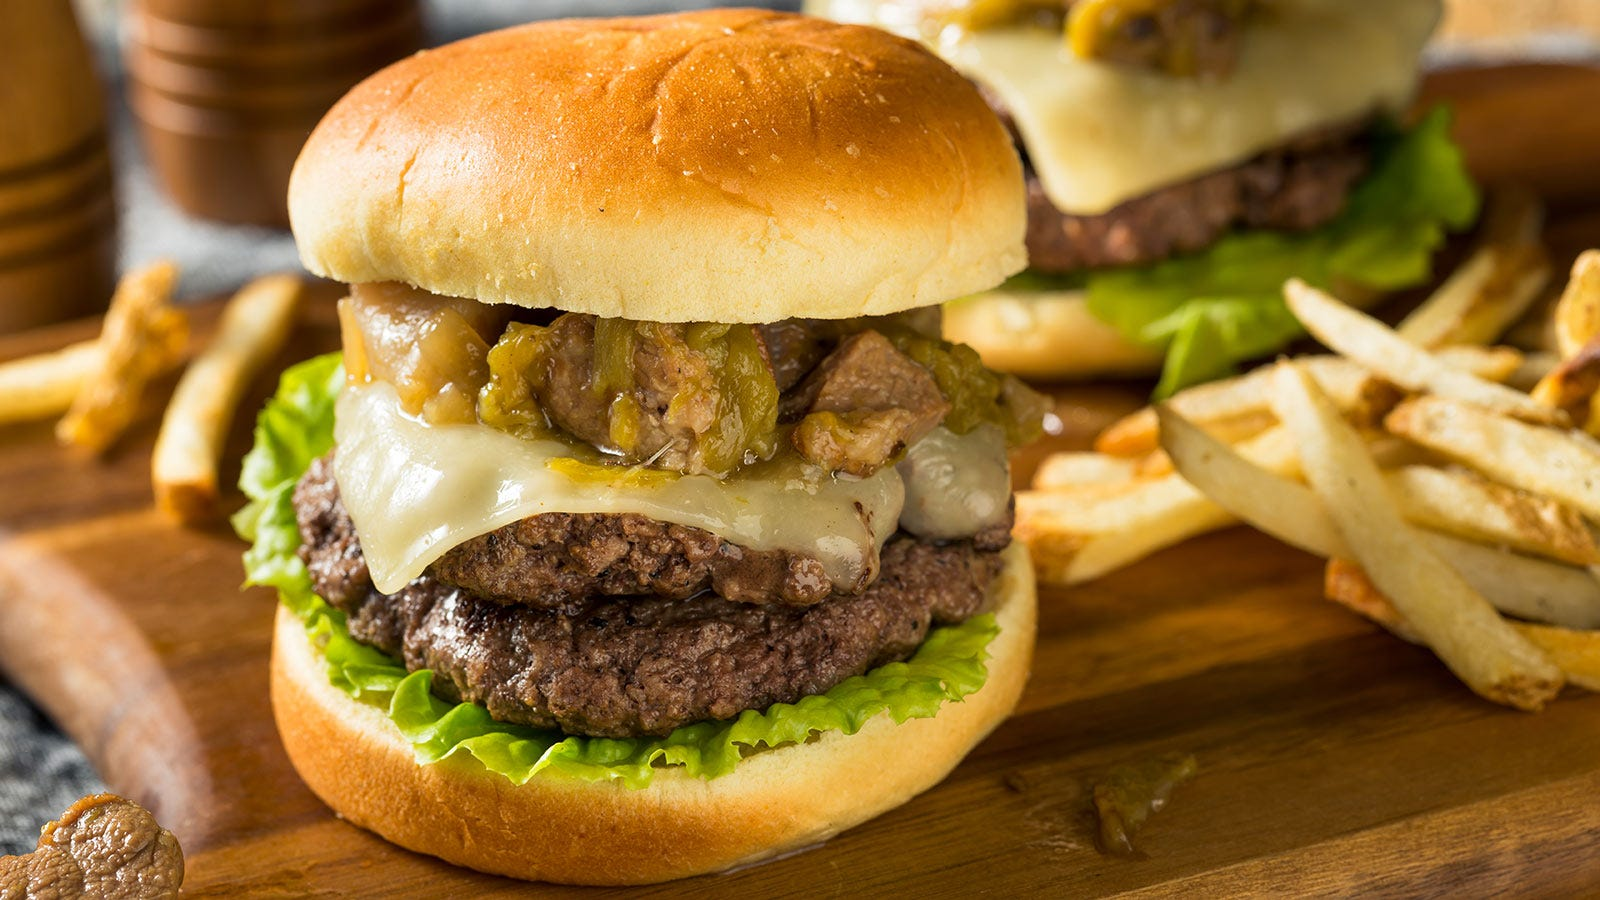 A sizable burger decked out with cheese and green chili sauce.